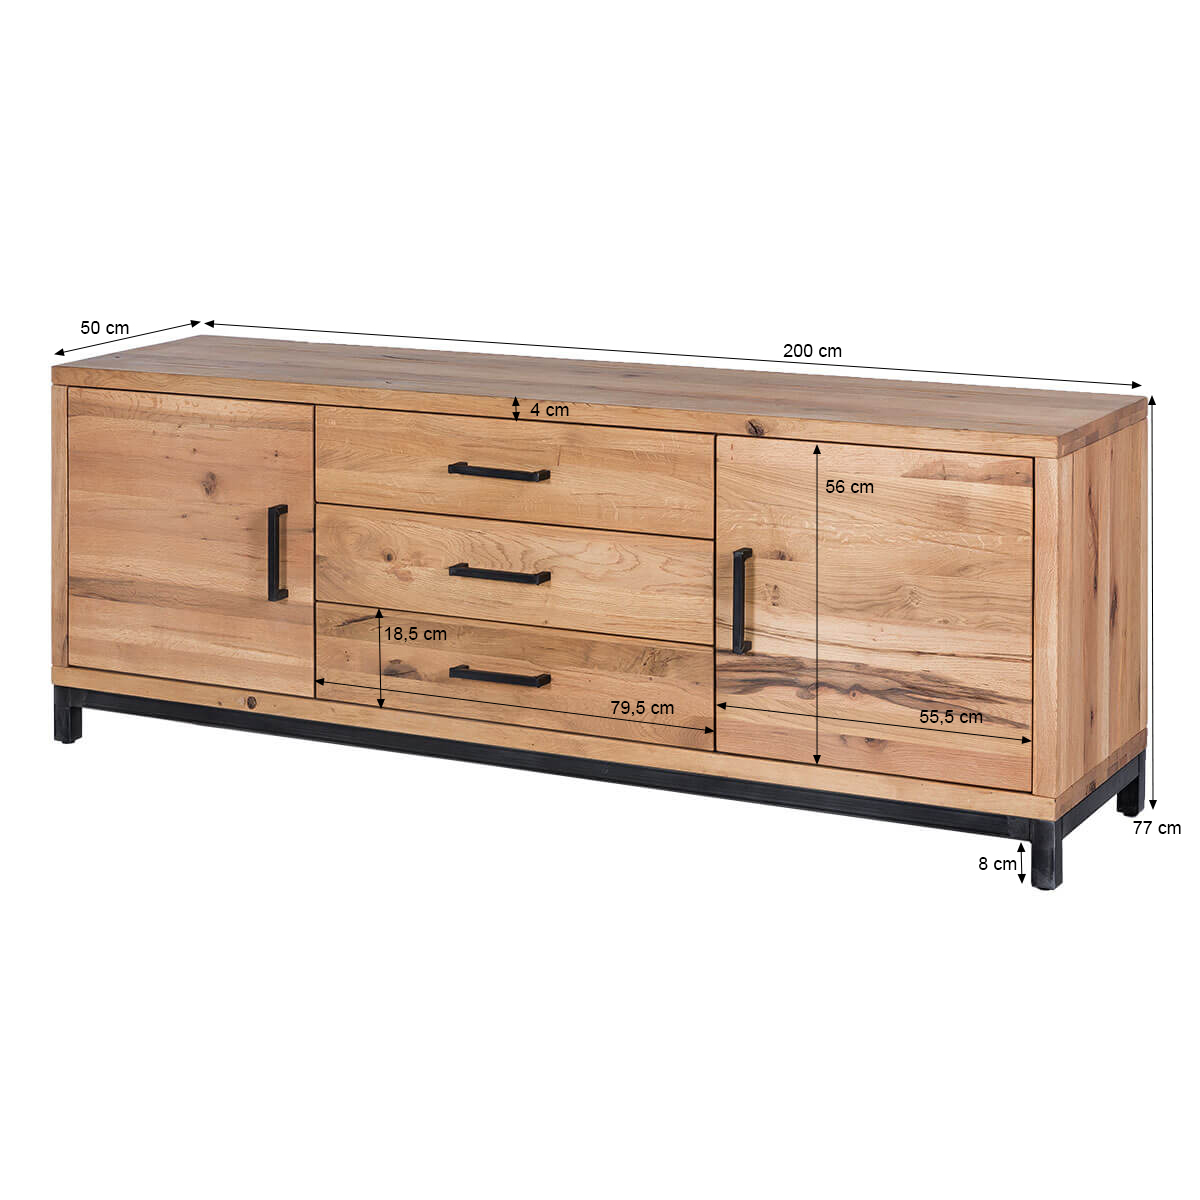 sideboard bestano 200 x 50 x 77 cm eiche massivholz. Black Bedroom Furniture Sets. Home Design Ideas